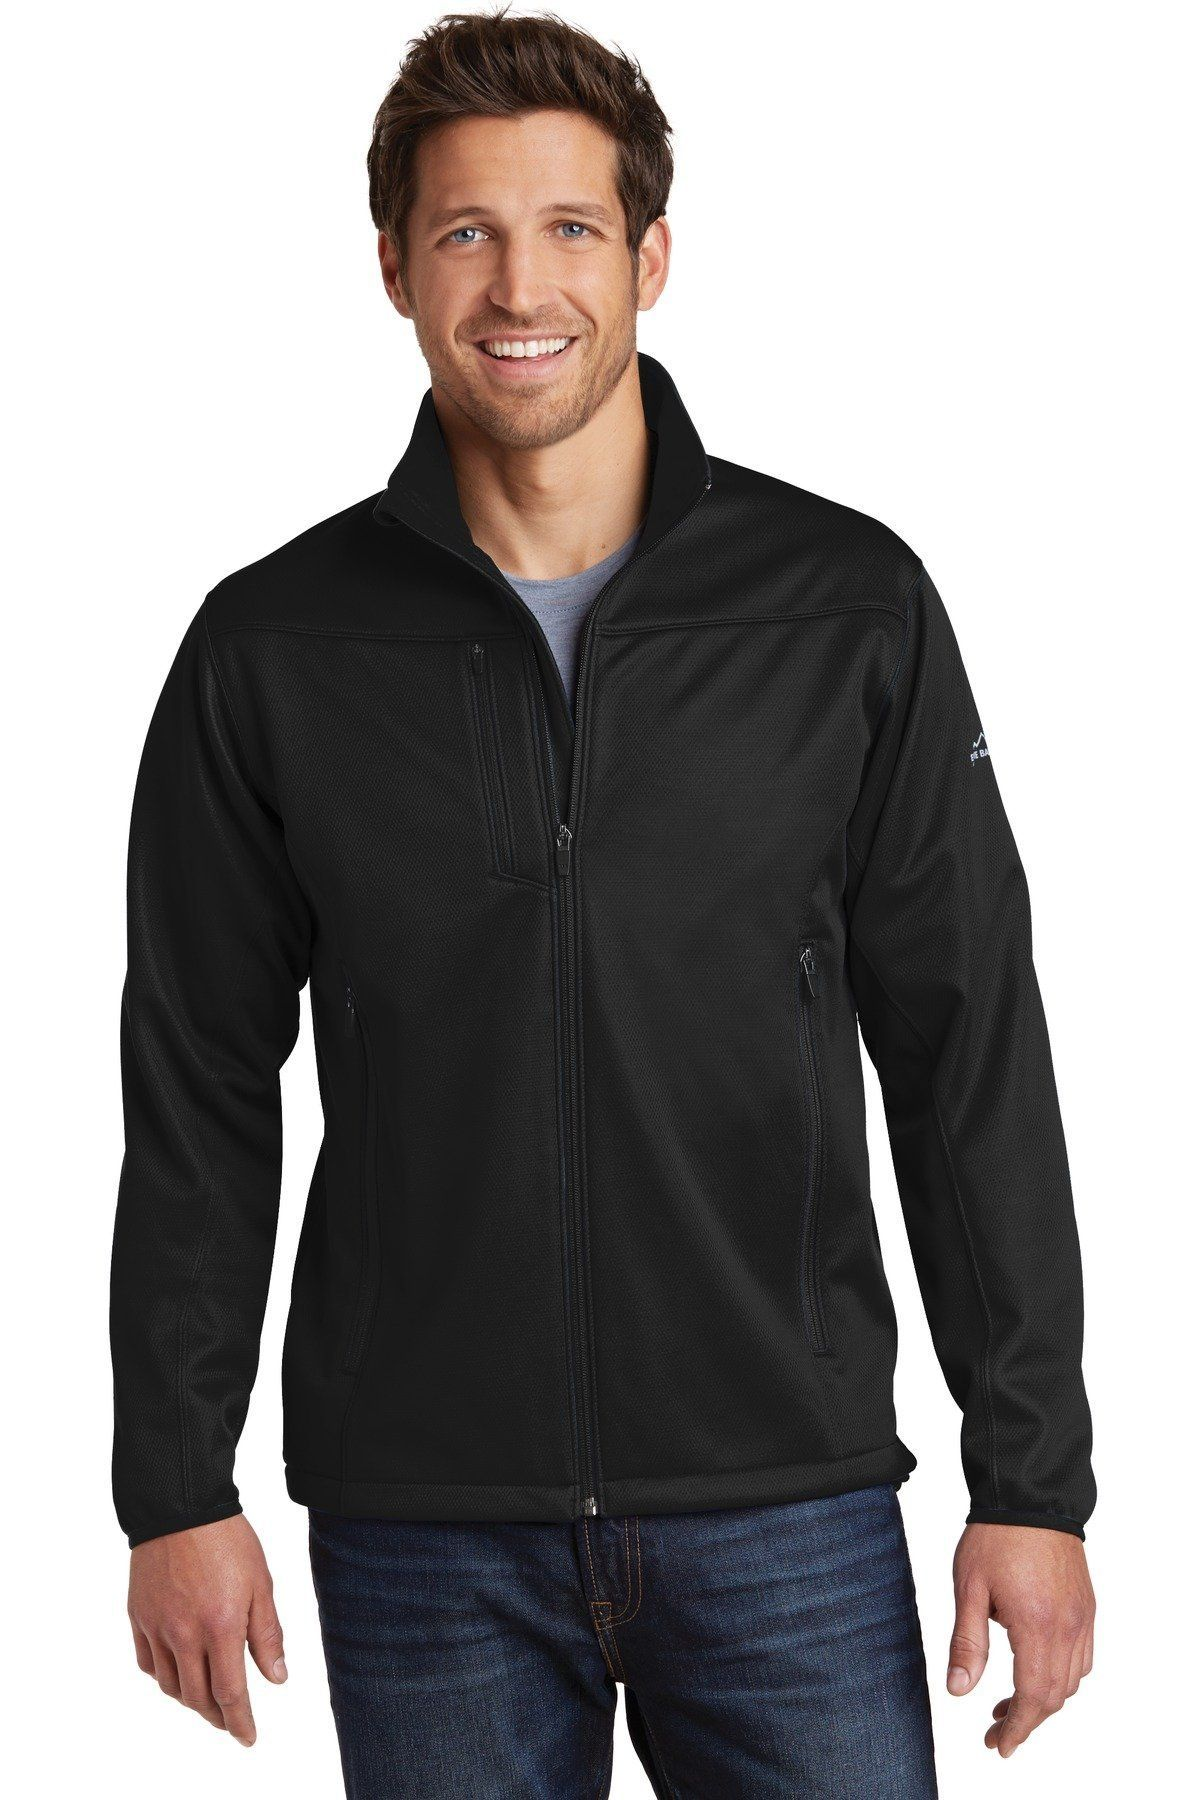 Eddie Bauer WeatherResist Soft Shell Jacket. EB538 Black